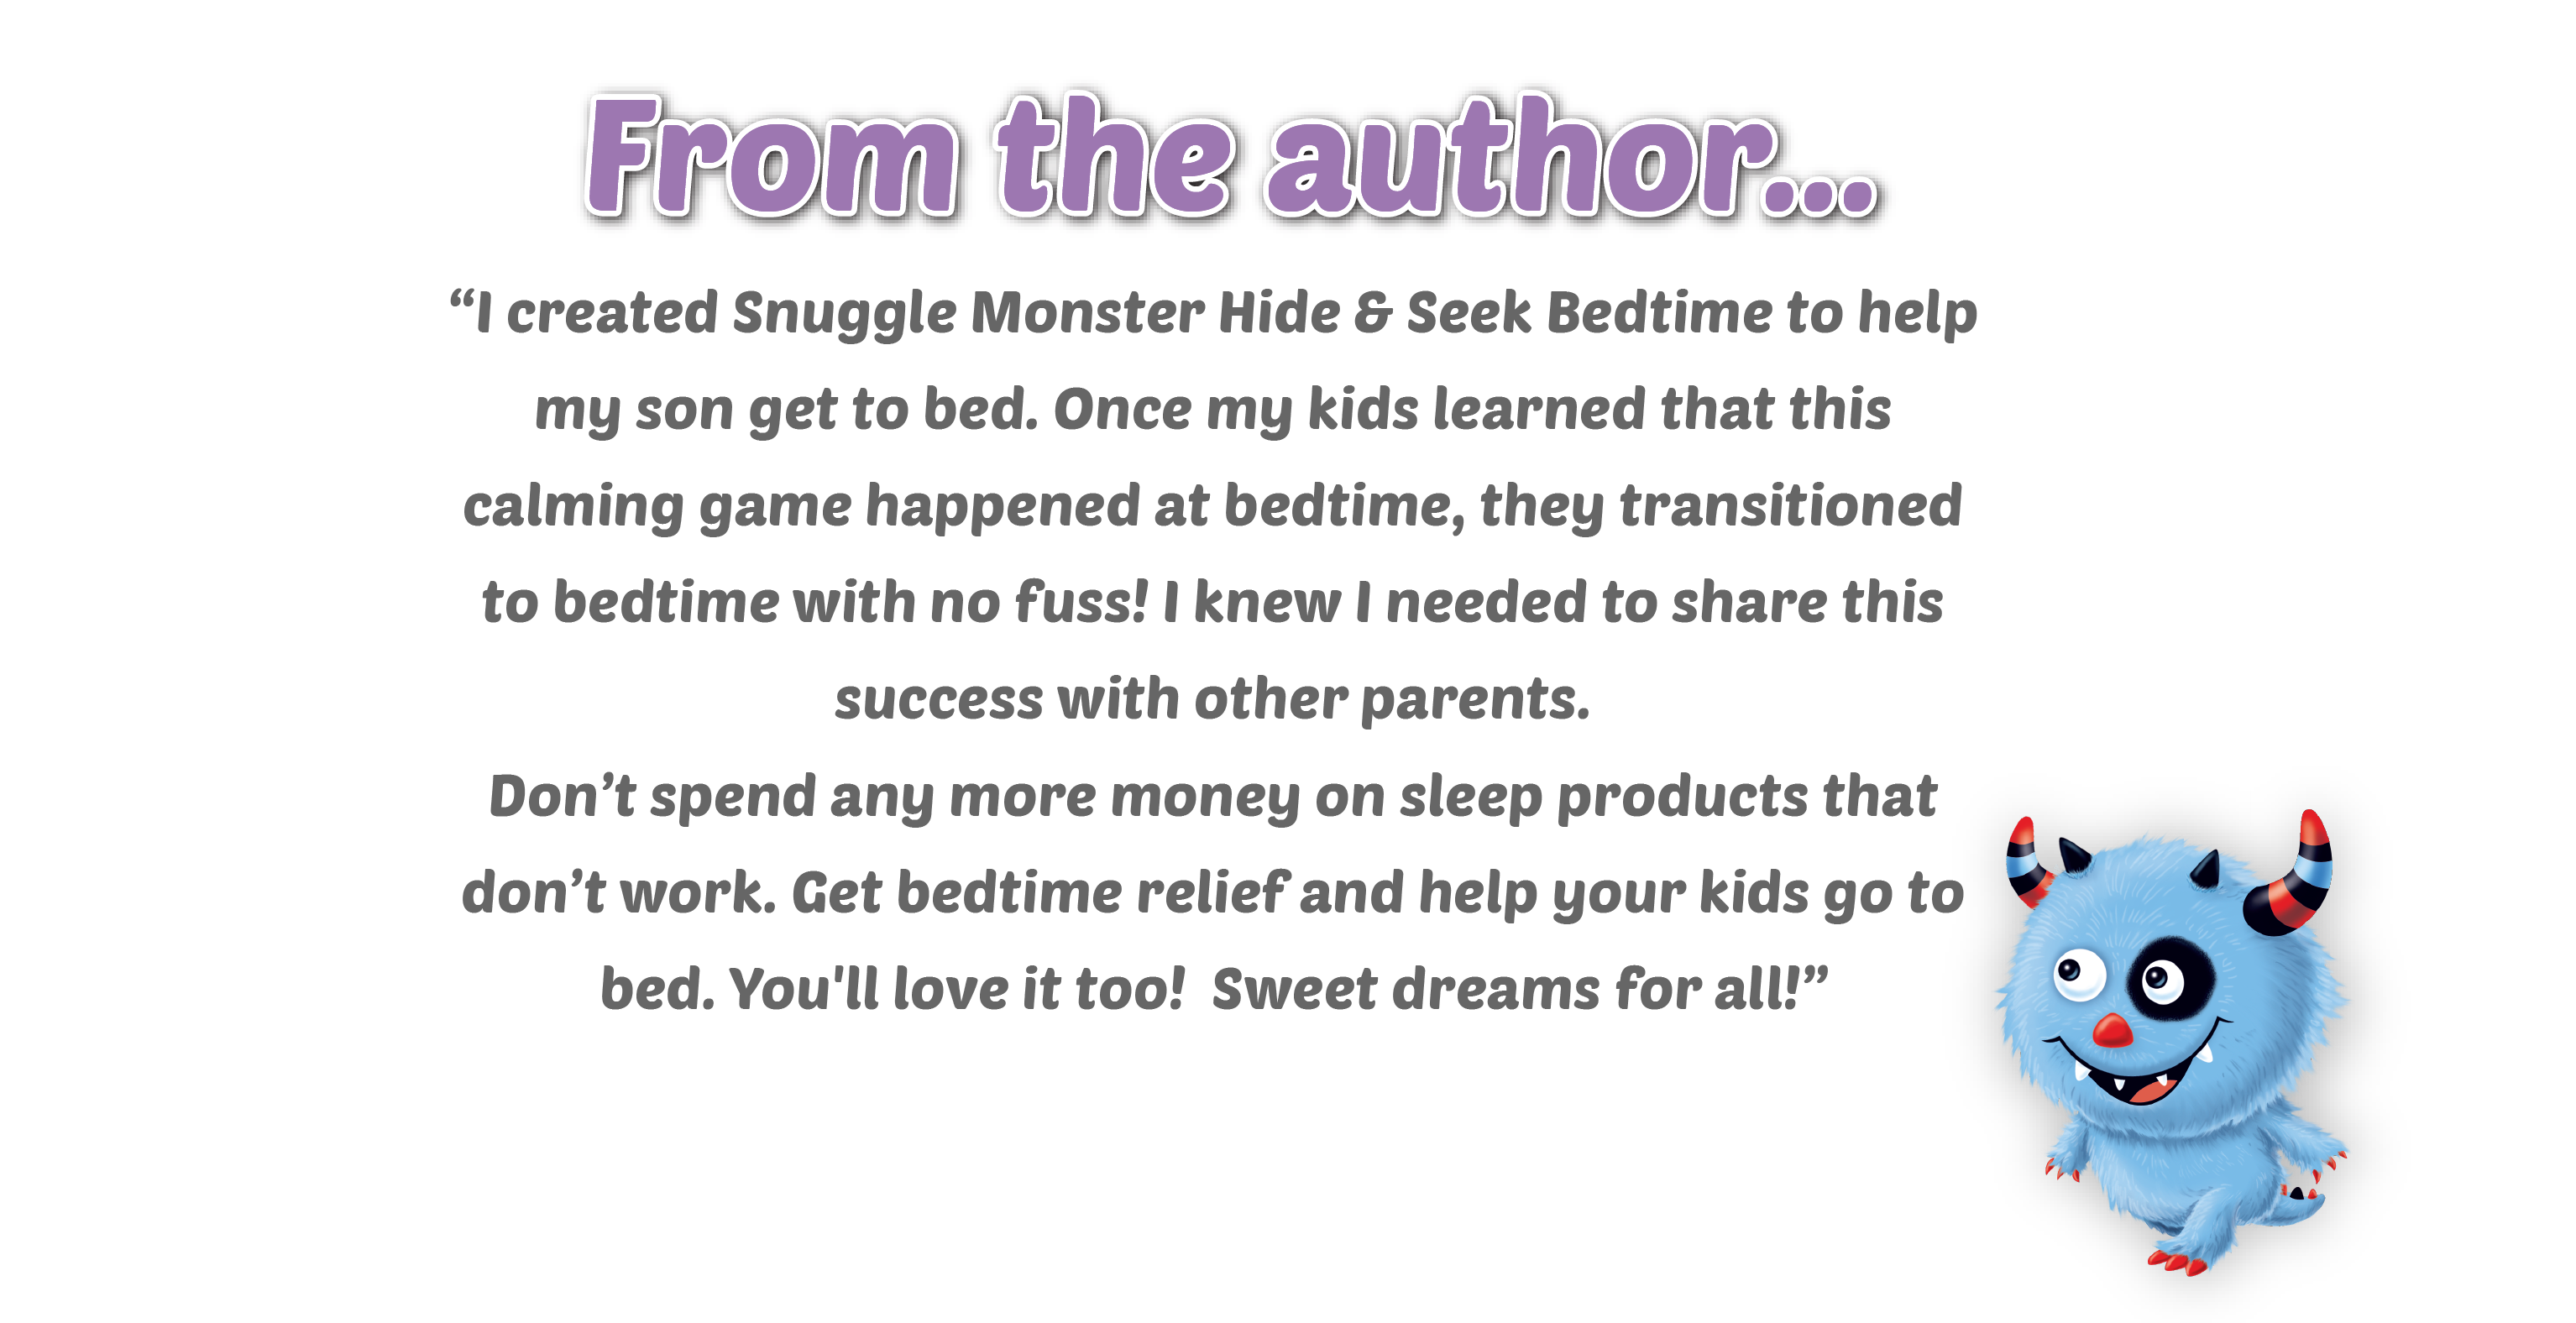 A note from the author